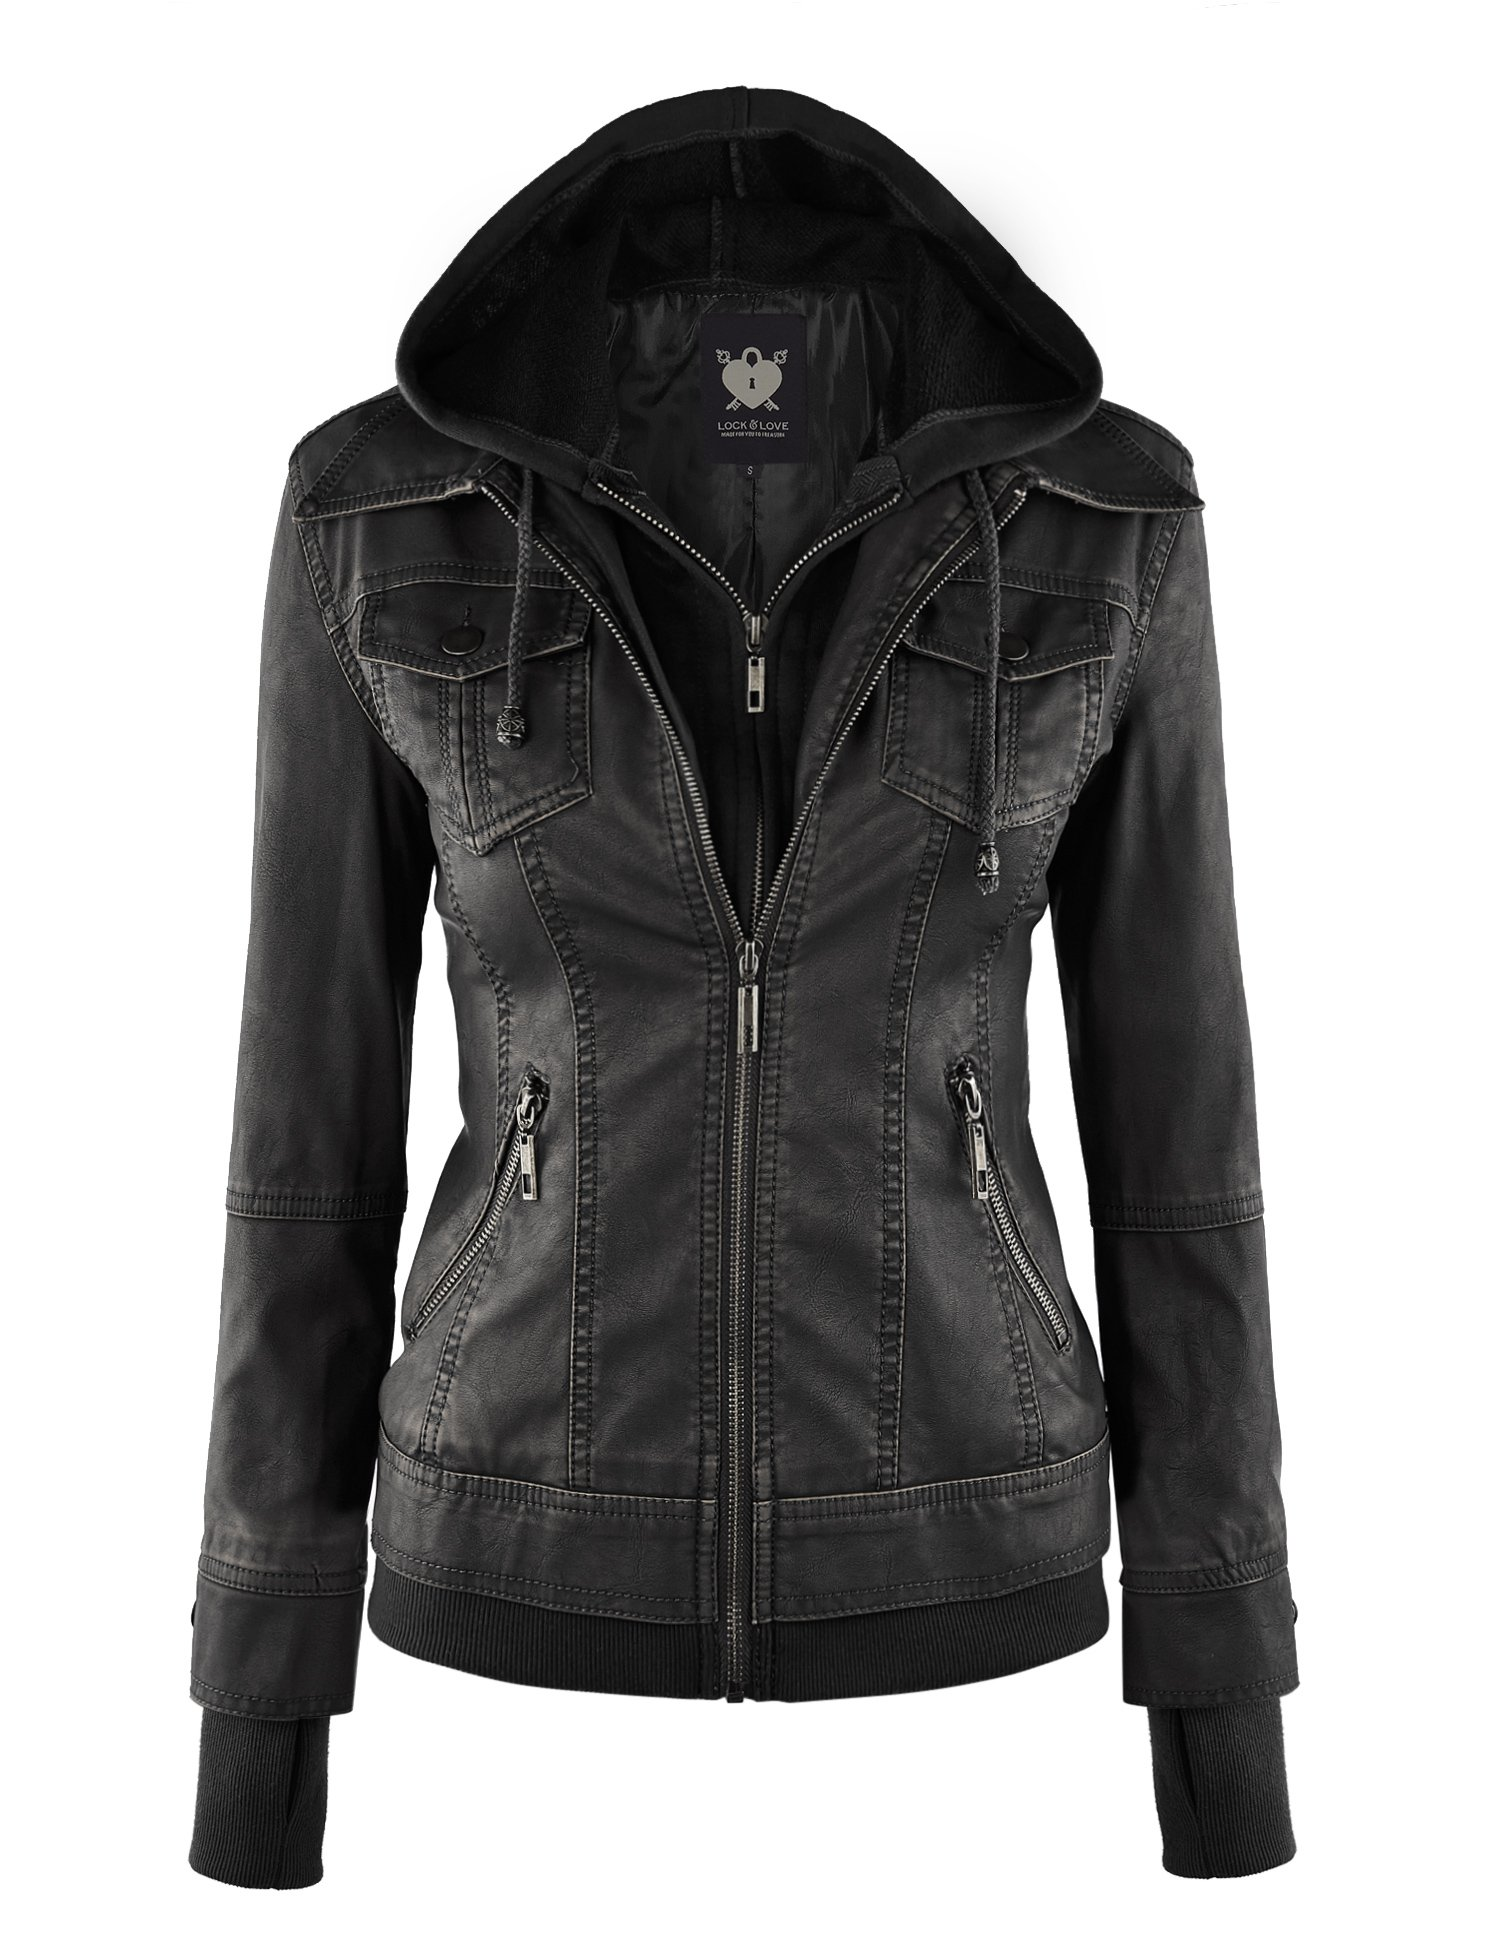 WJC664 Womens Faux Leather Jacket With Hoodie L Black